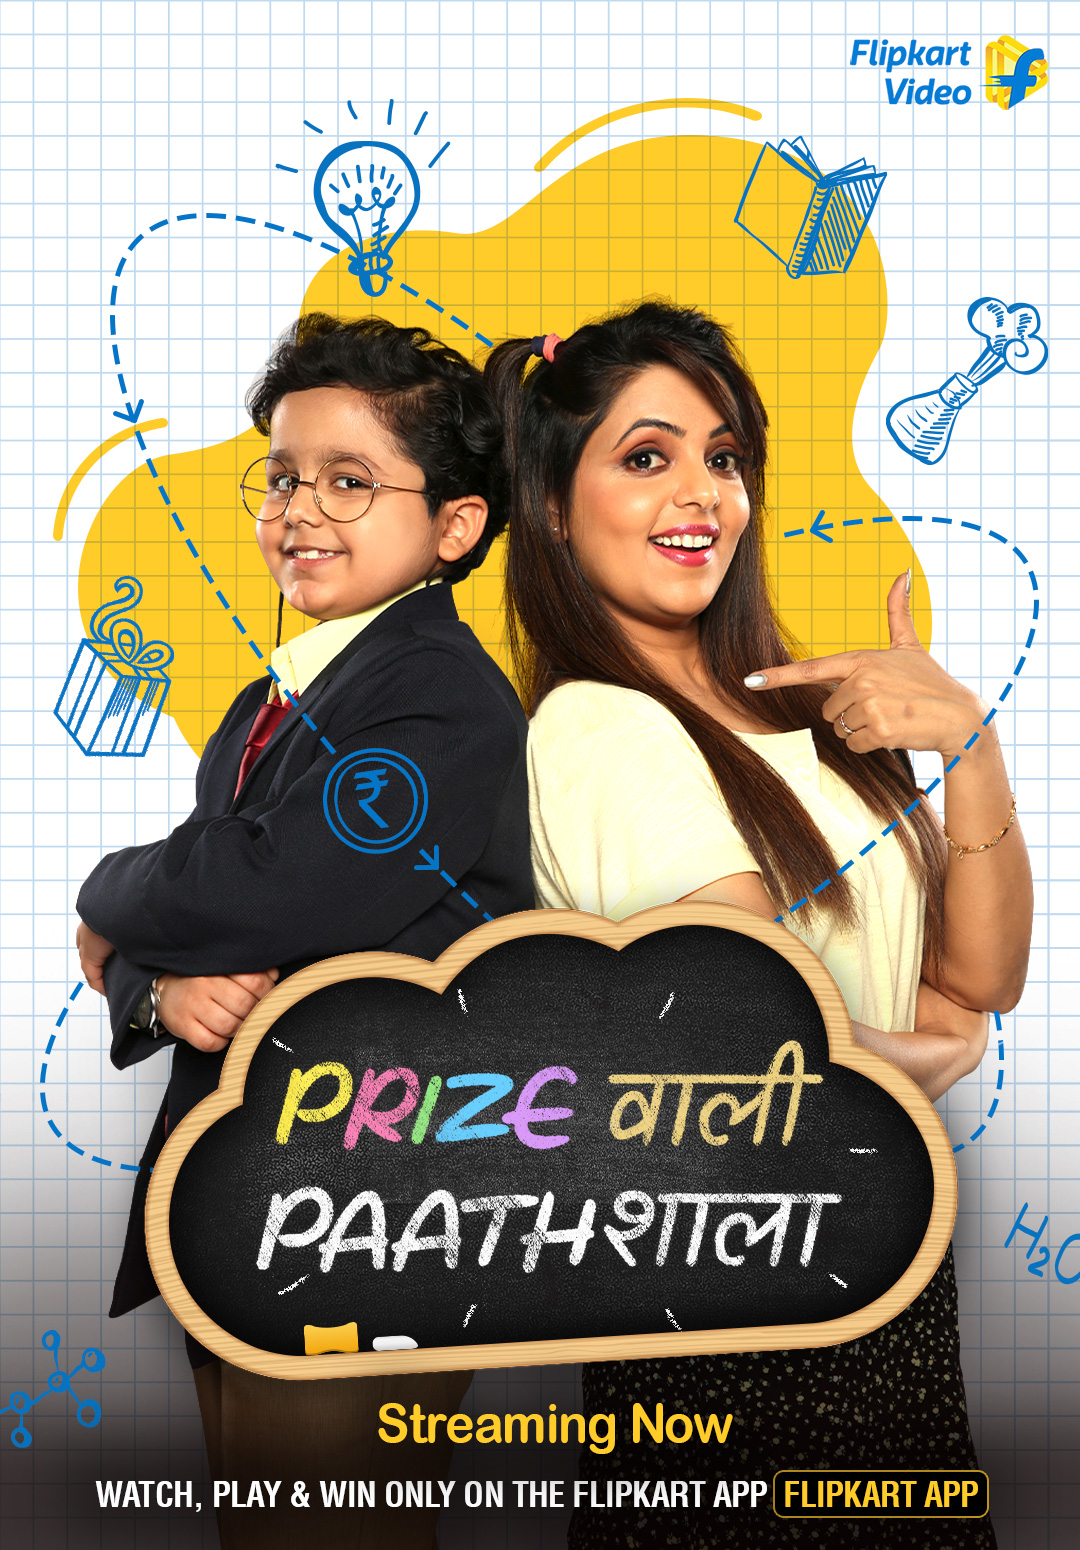 Flipkart Video's Prize Wali Paathshala will take you back in time!